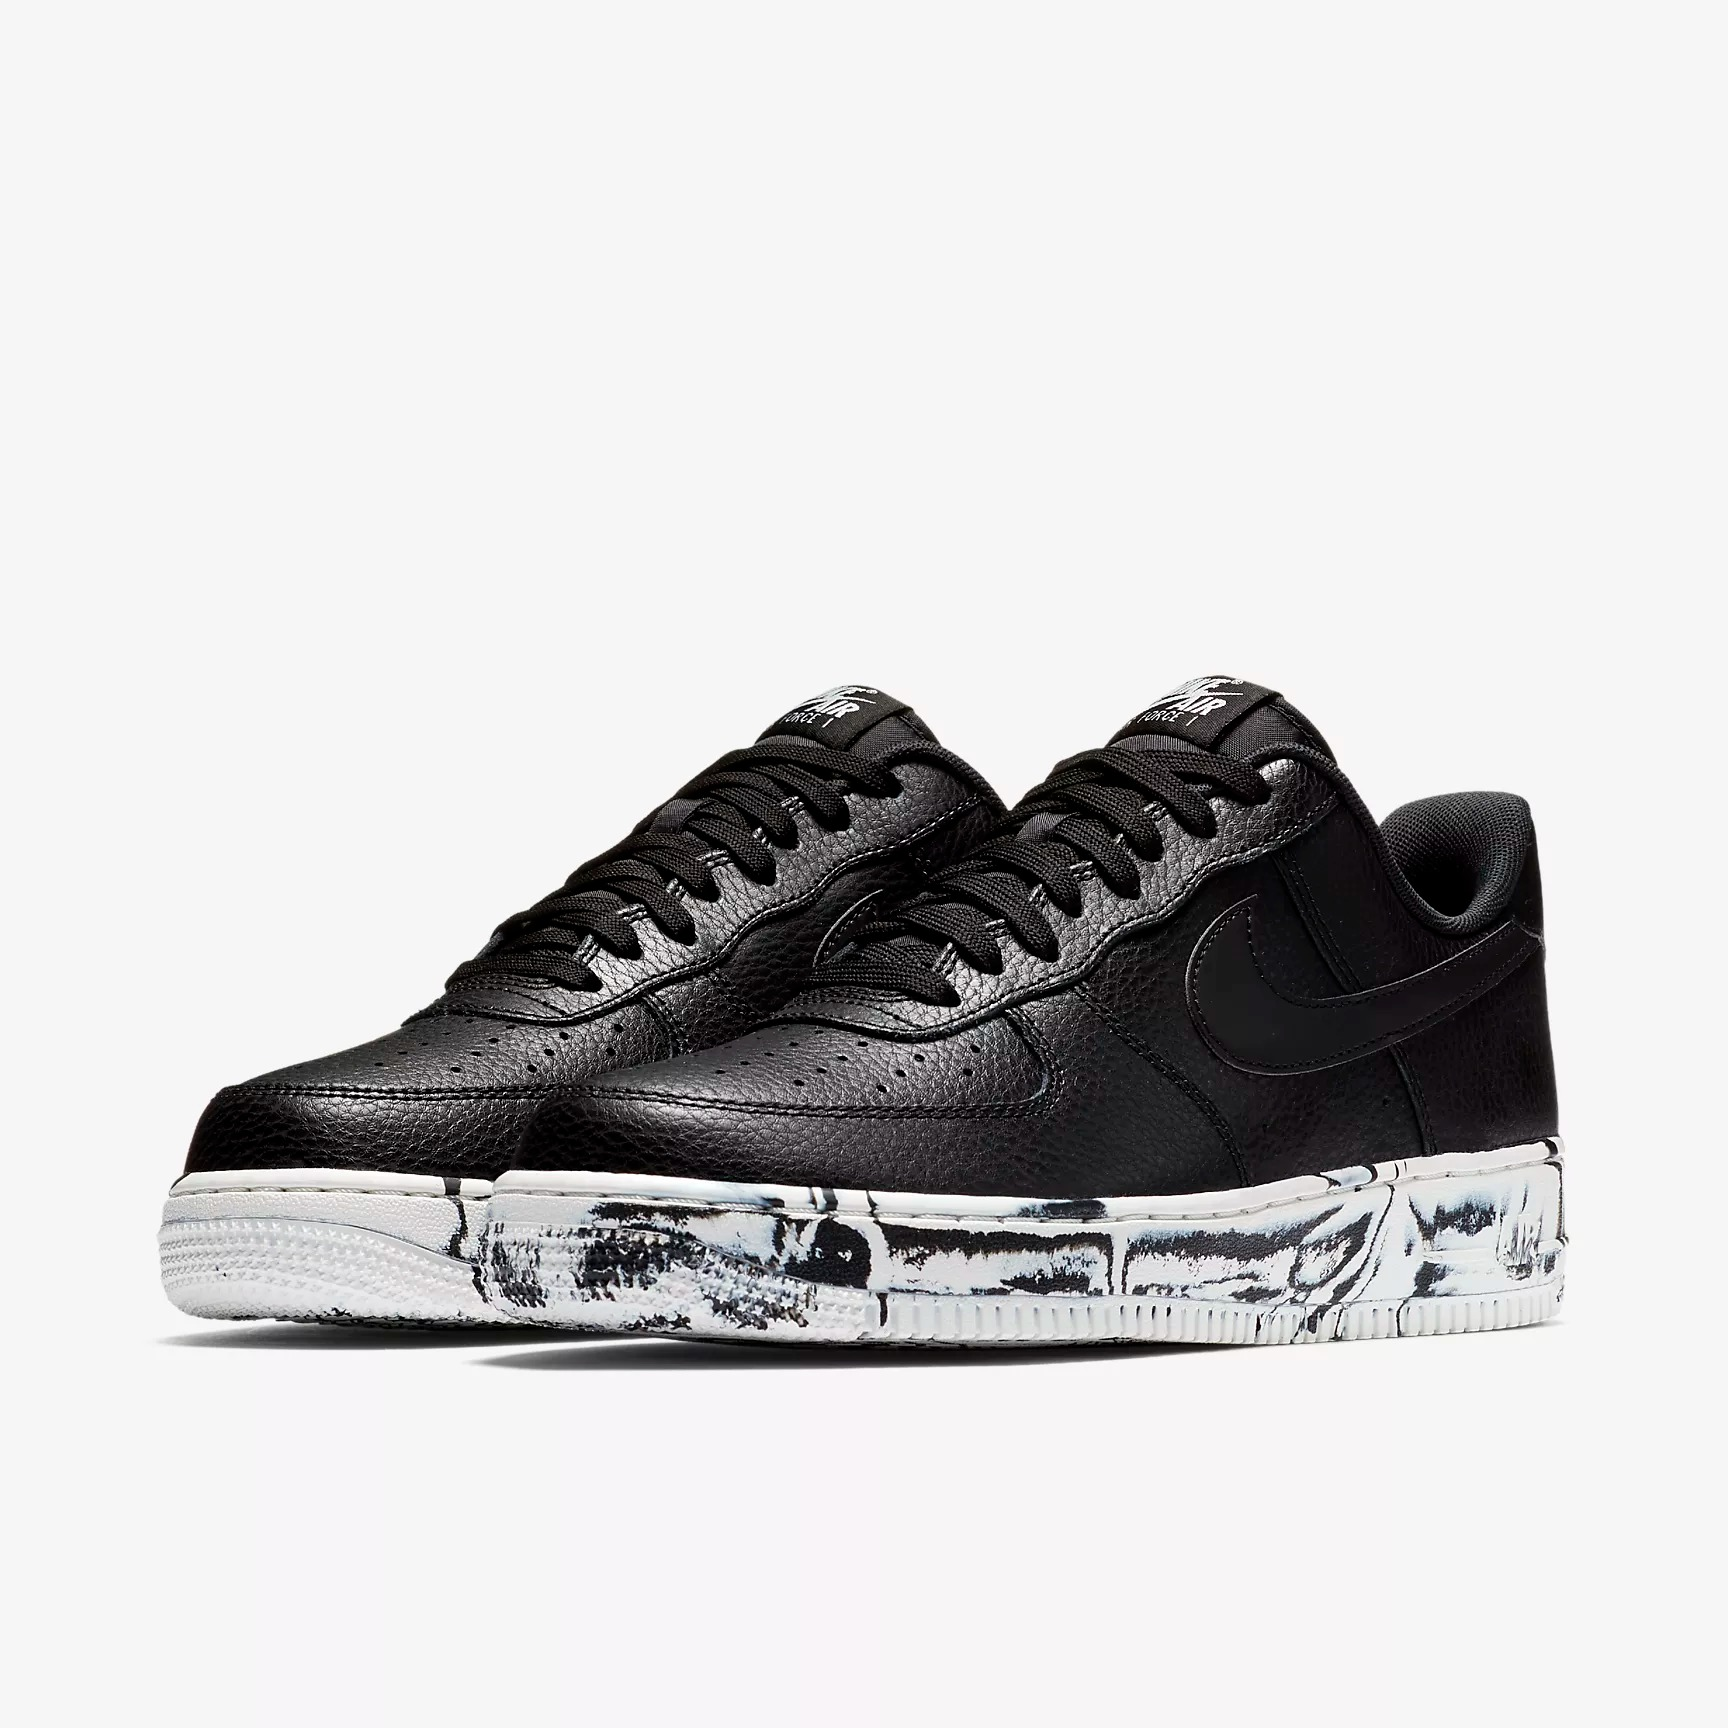 quality design cd47a 28038 Nike Air Force 1  07 LV8 Leather Sneakers - SPORT SHOES Lifestyle Shoes    Sneakers - Superfanas.lt